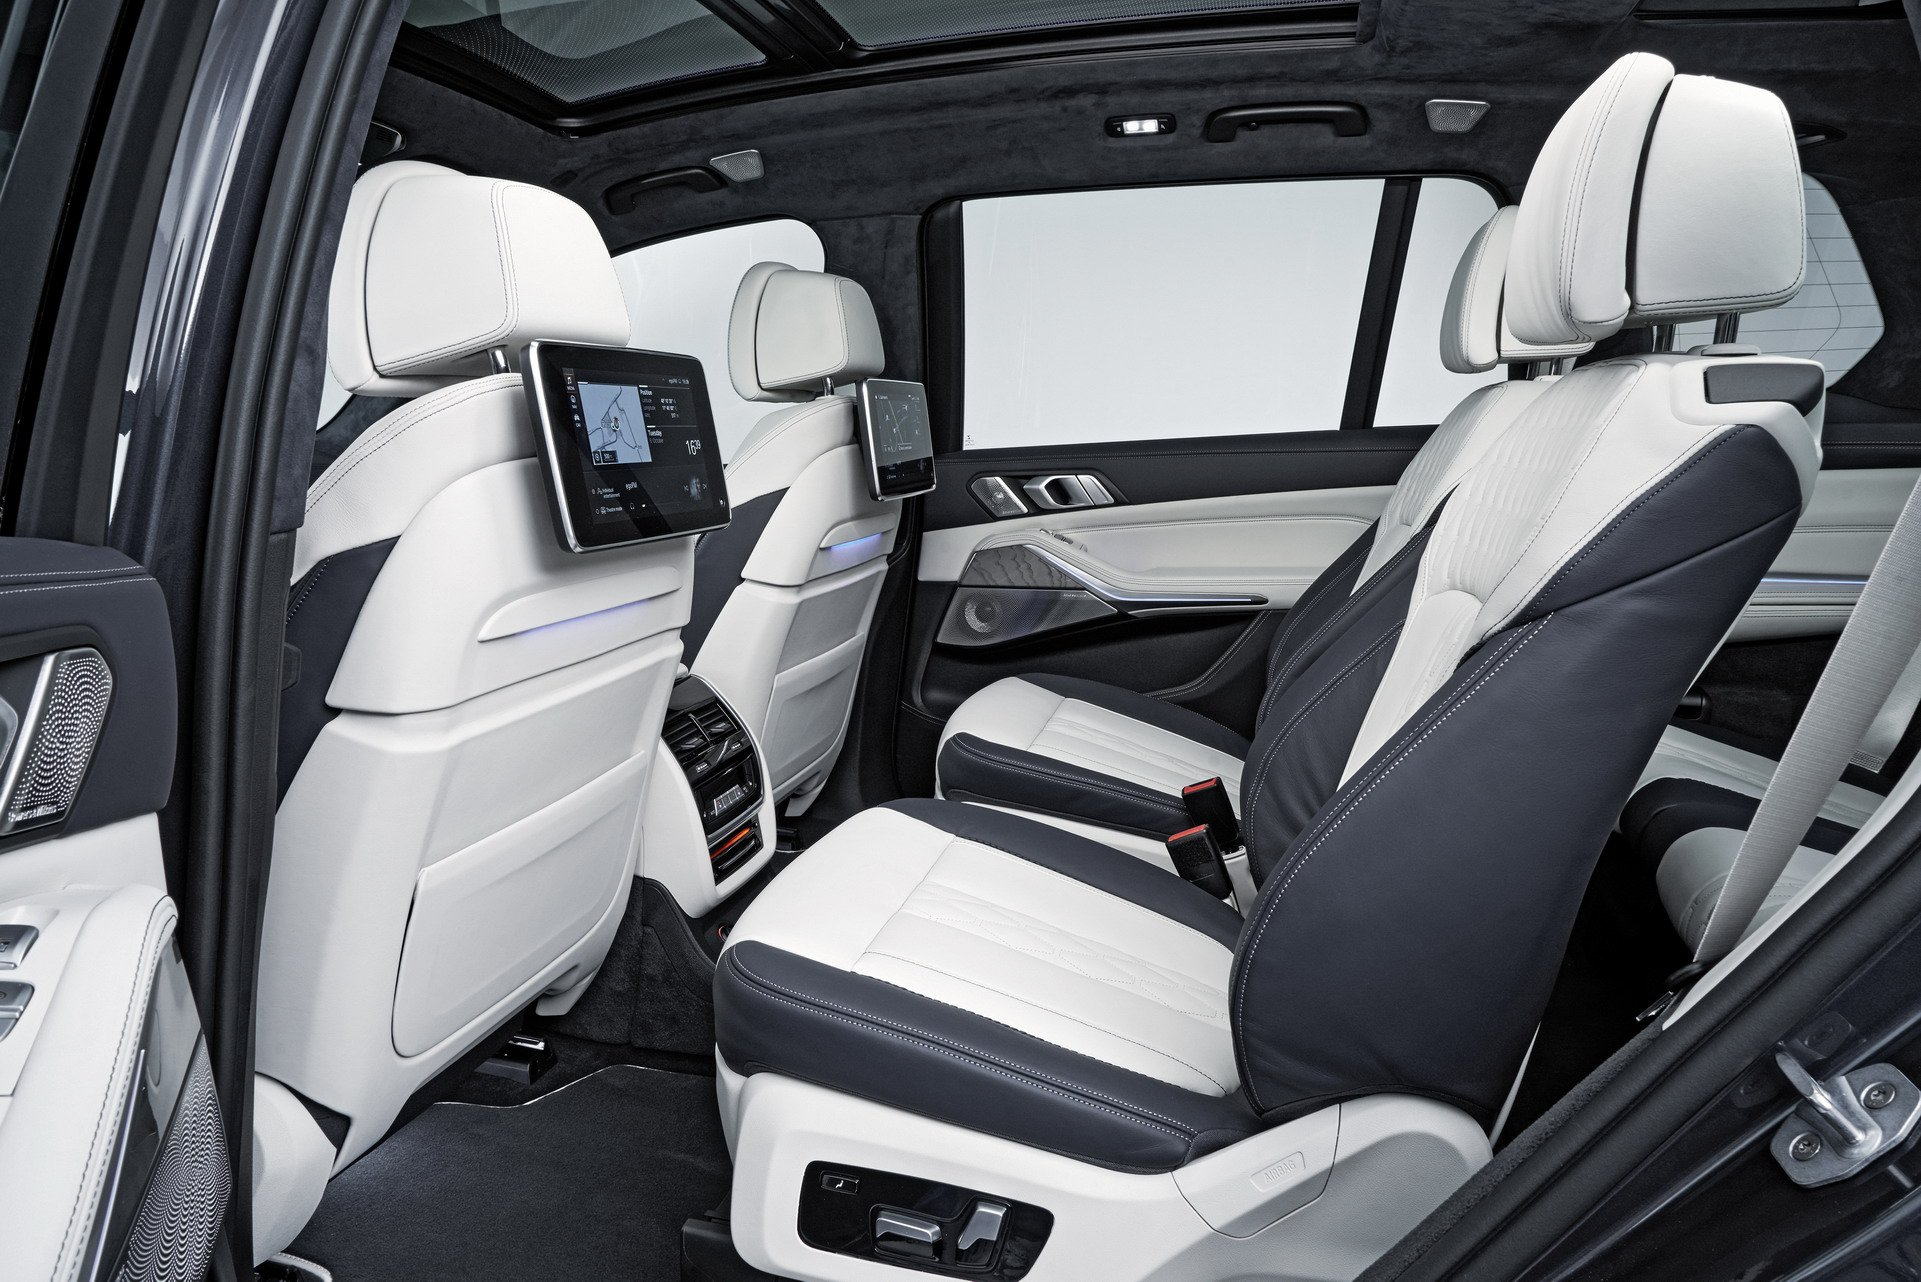 BMW X7 second row entertainment